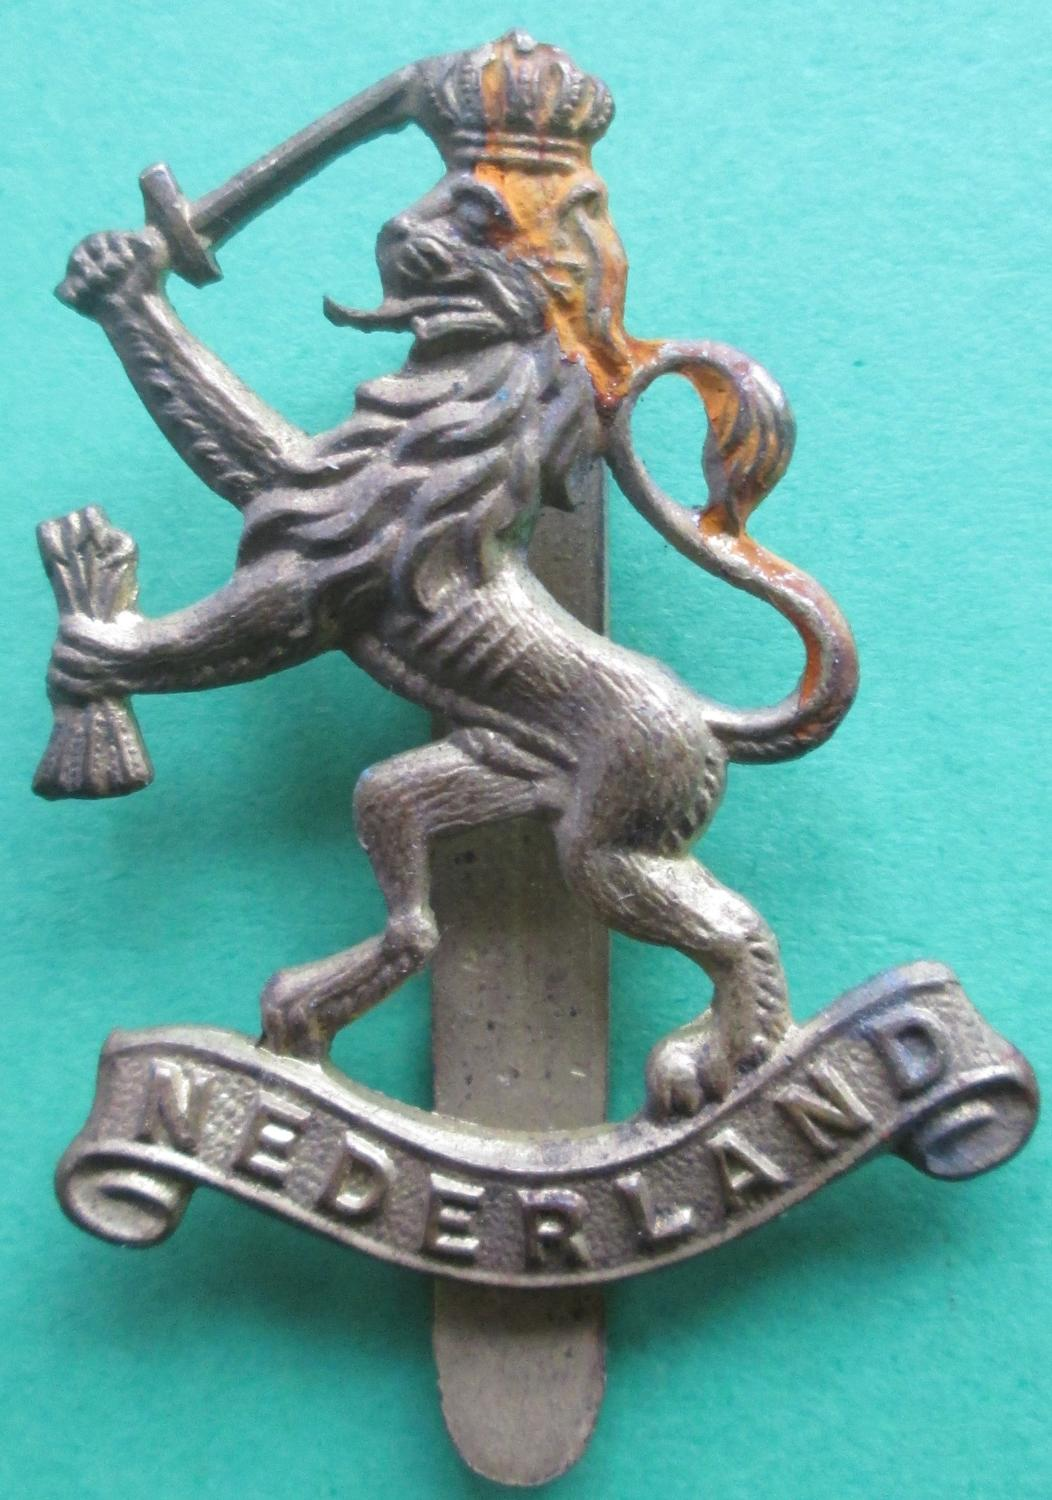 A WWII NETHERLANDS OTHER RANKS CAP BADGE